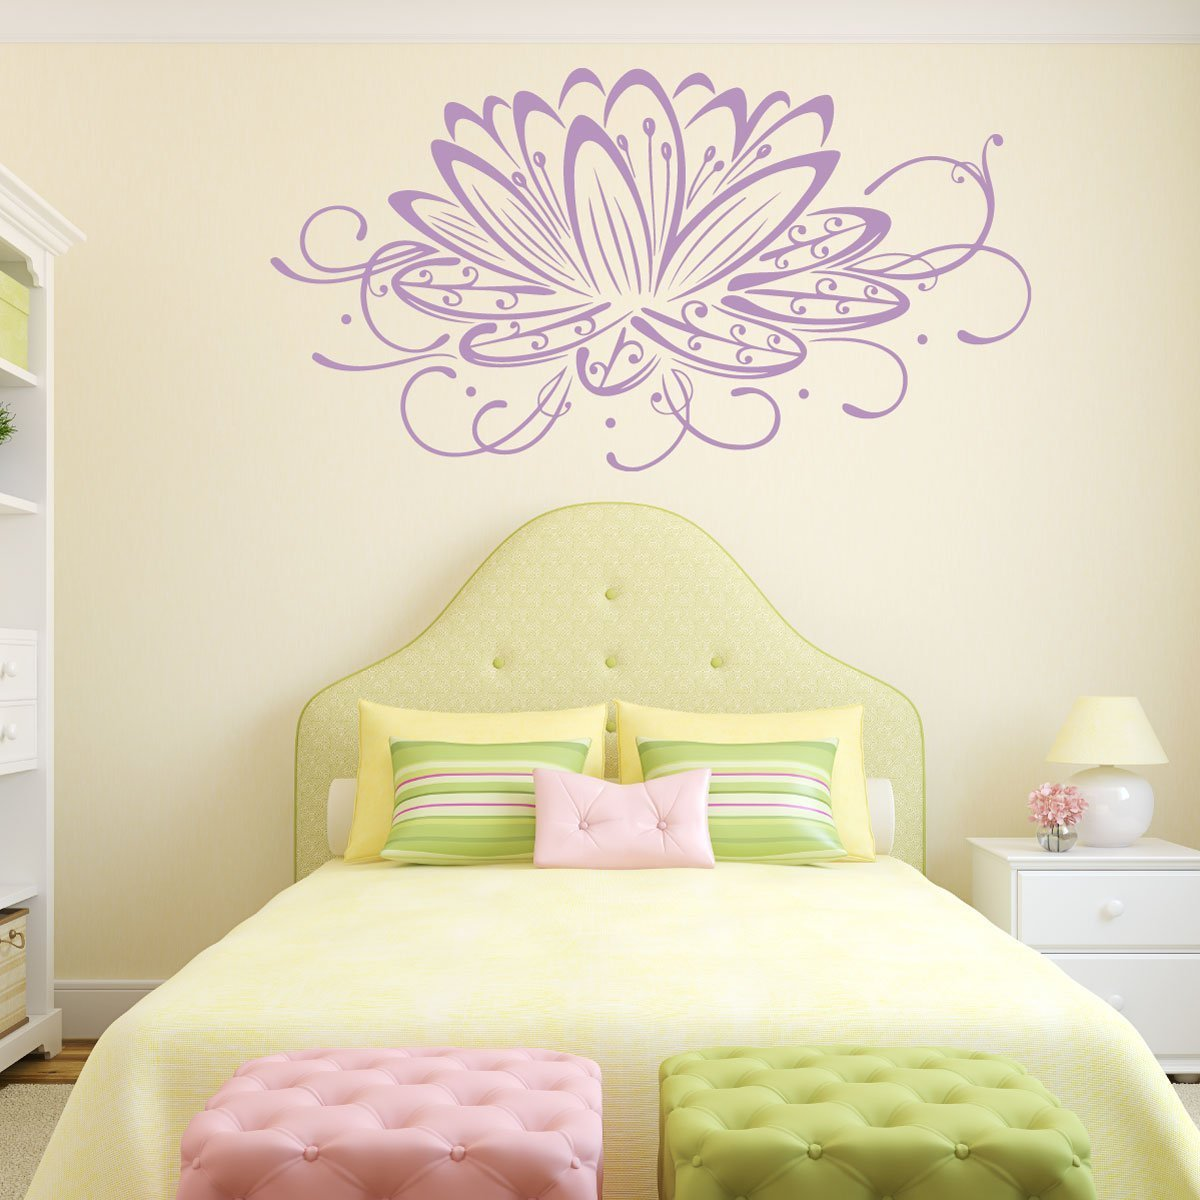 Lotus Flower Wall Decal - Flower Decals